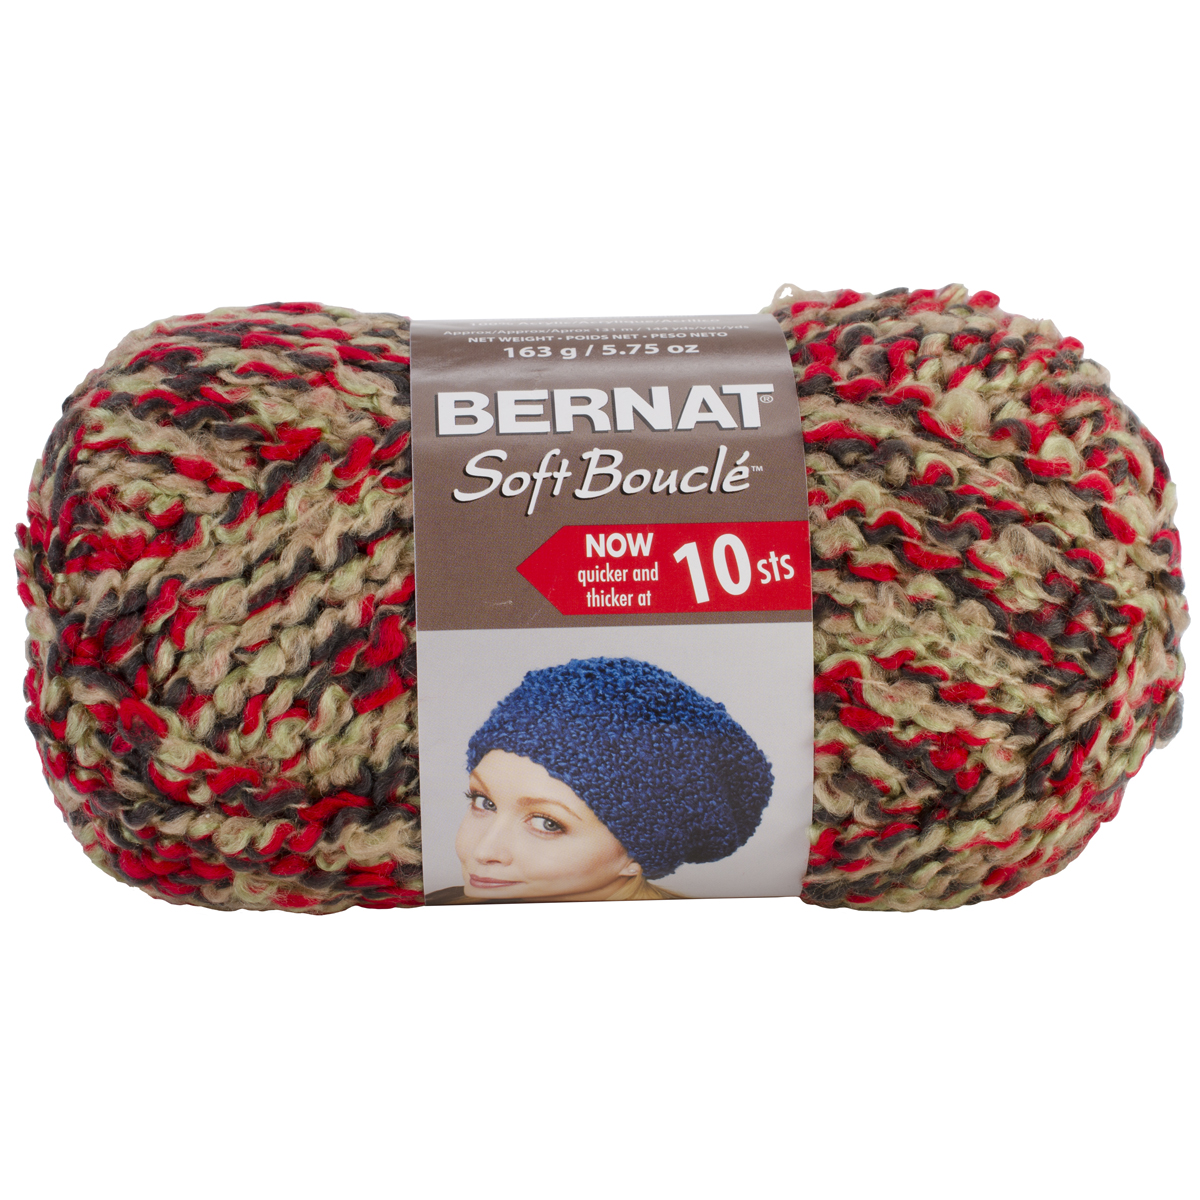 Super Bulky Yarn : ... Soft Boucle Yarn ? Bernat Soft Boucle Yarn Super Bulky Chili Peppers